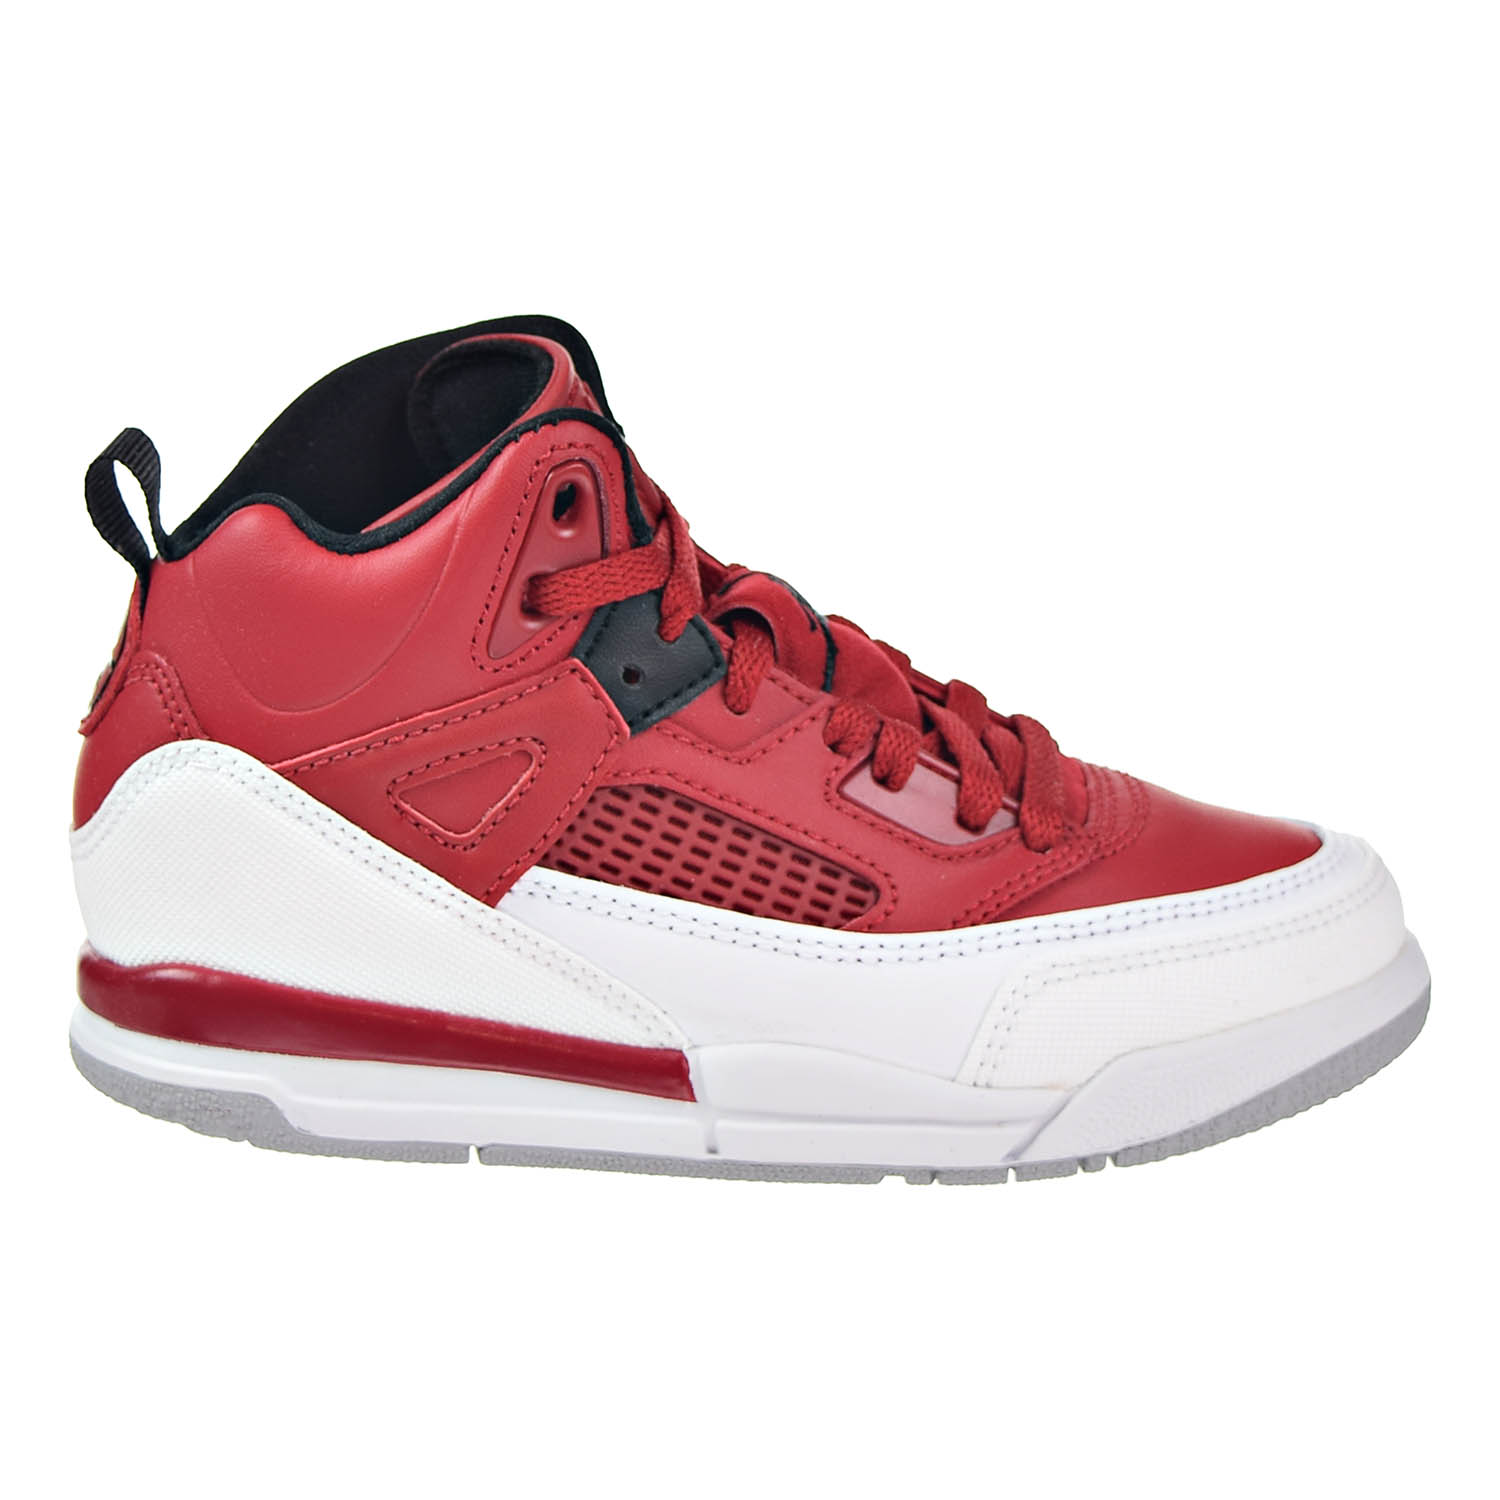 Jordan Spizike BP Preschool Basketball Shoes Gym Red/Black/White/Wolf Grey 317700-603